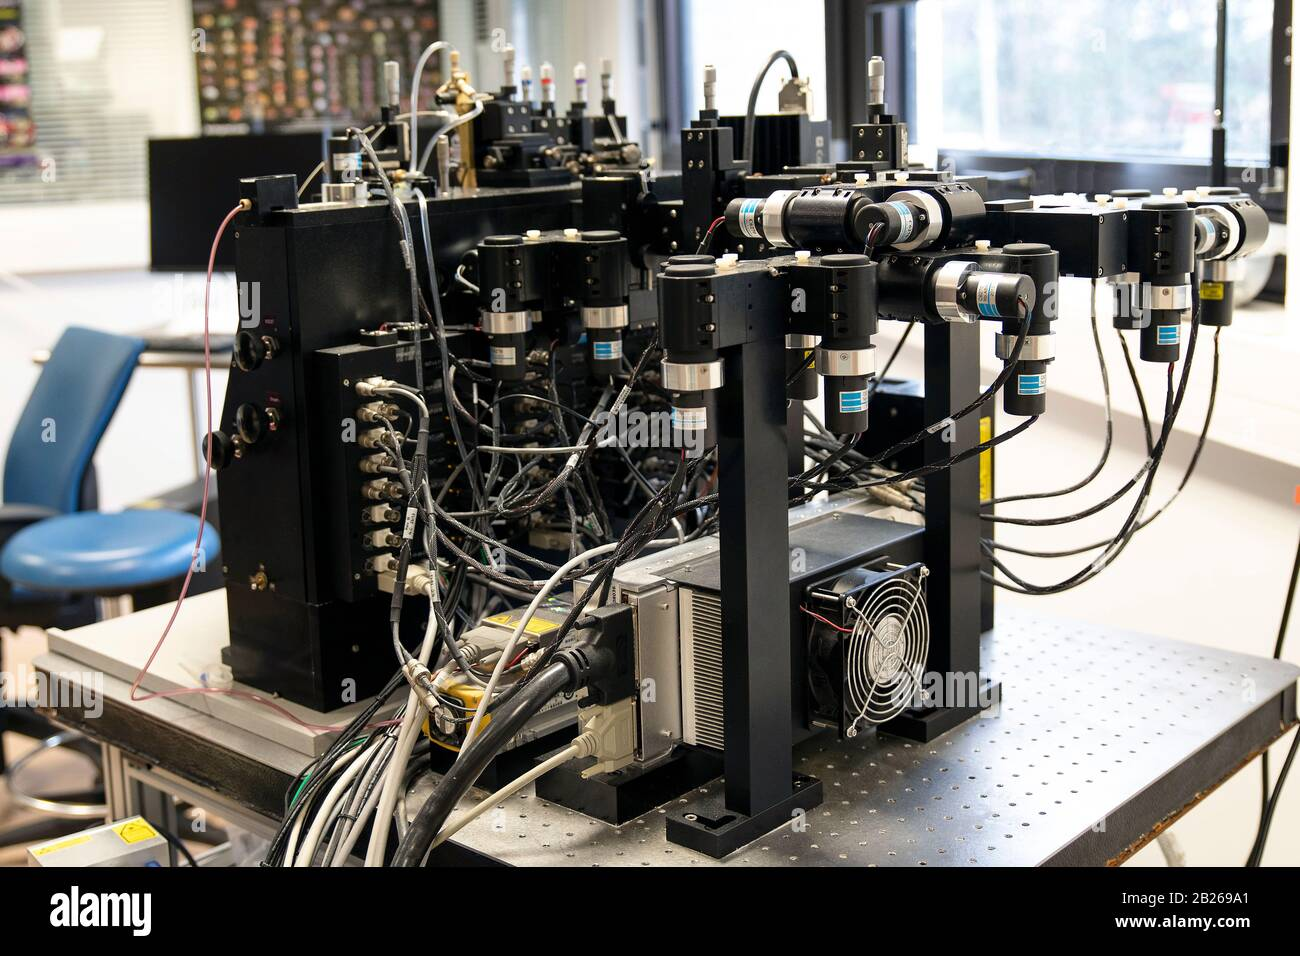 Electronic apparatus in a physics laboratory Stock Photo